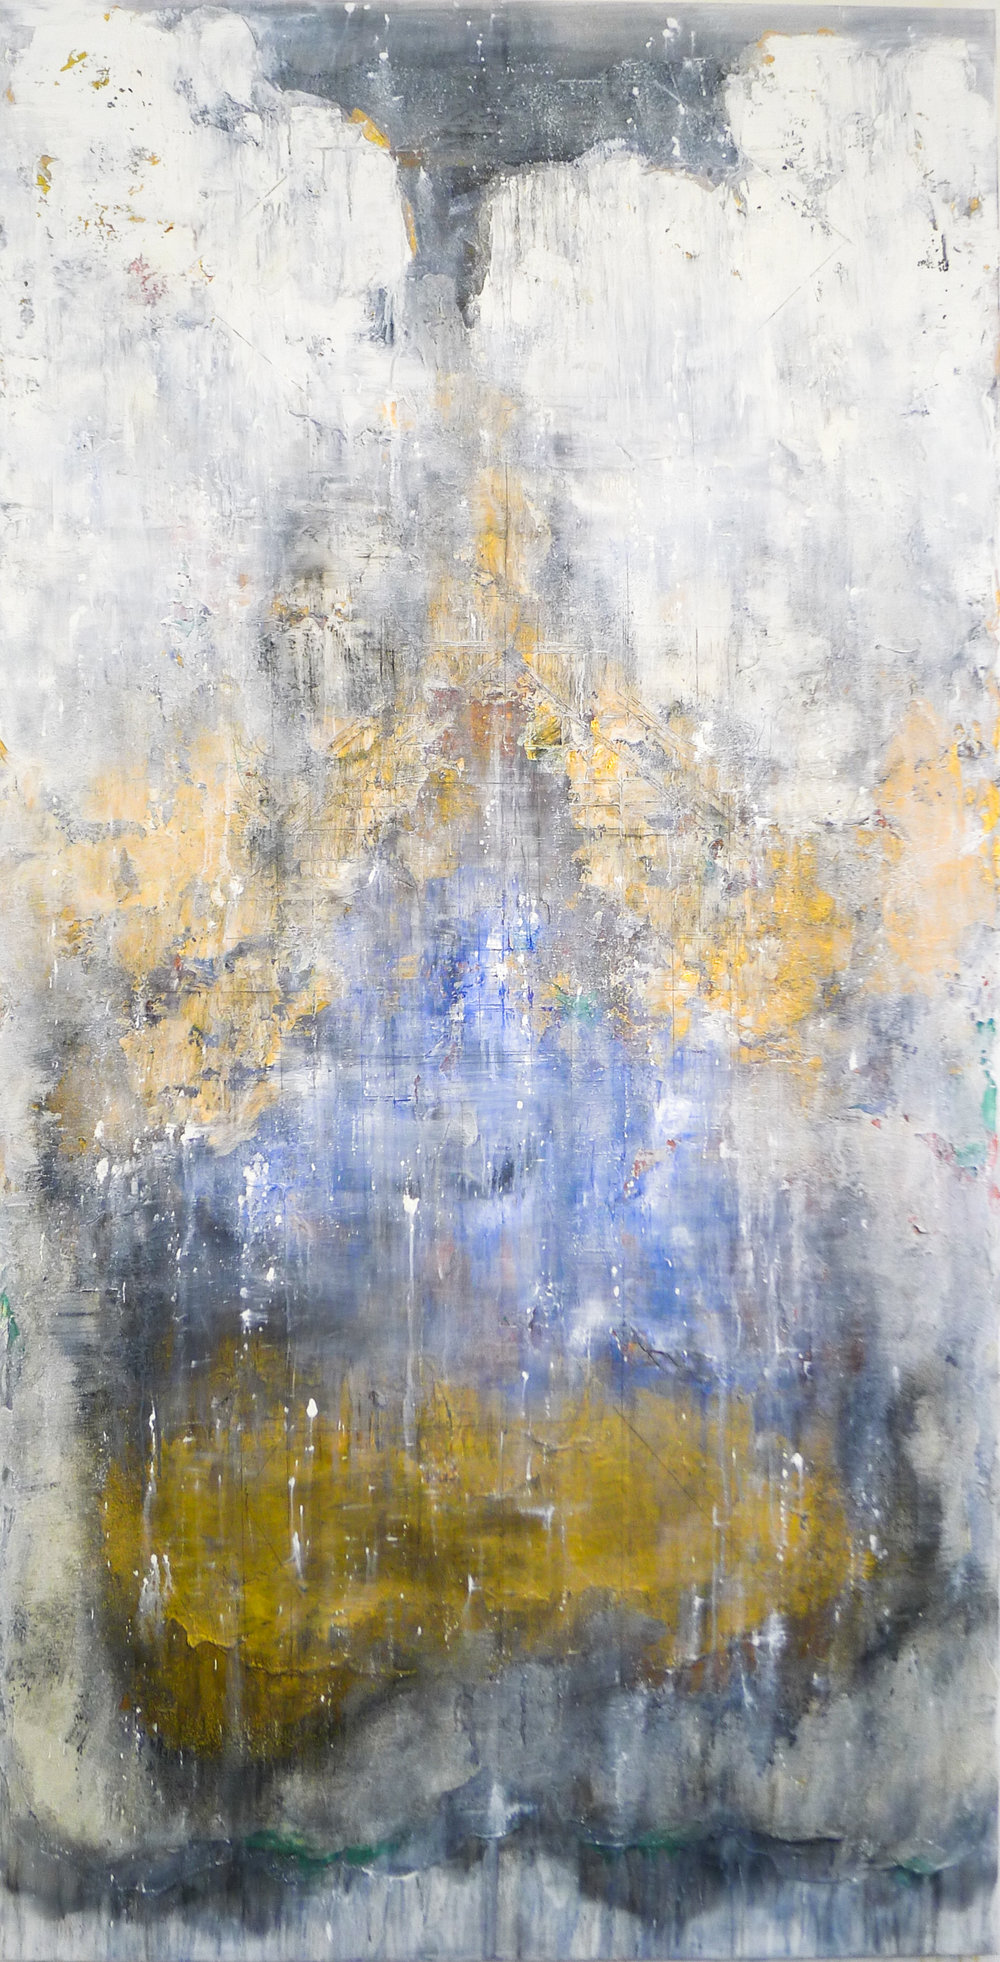 The Golden Light #8, 2016, Oil, Acrylic, Acrylic Medium and Charcoal on Canvas, 195 x 110 cm, HA Manh Thang